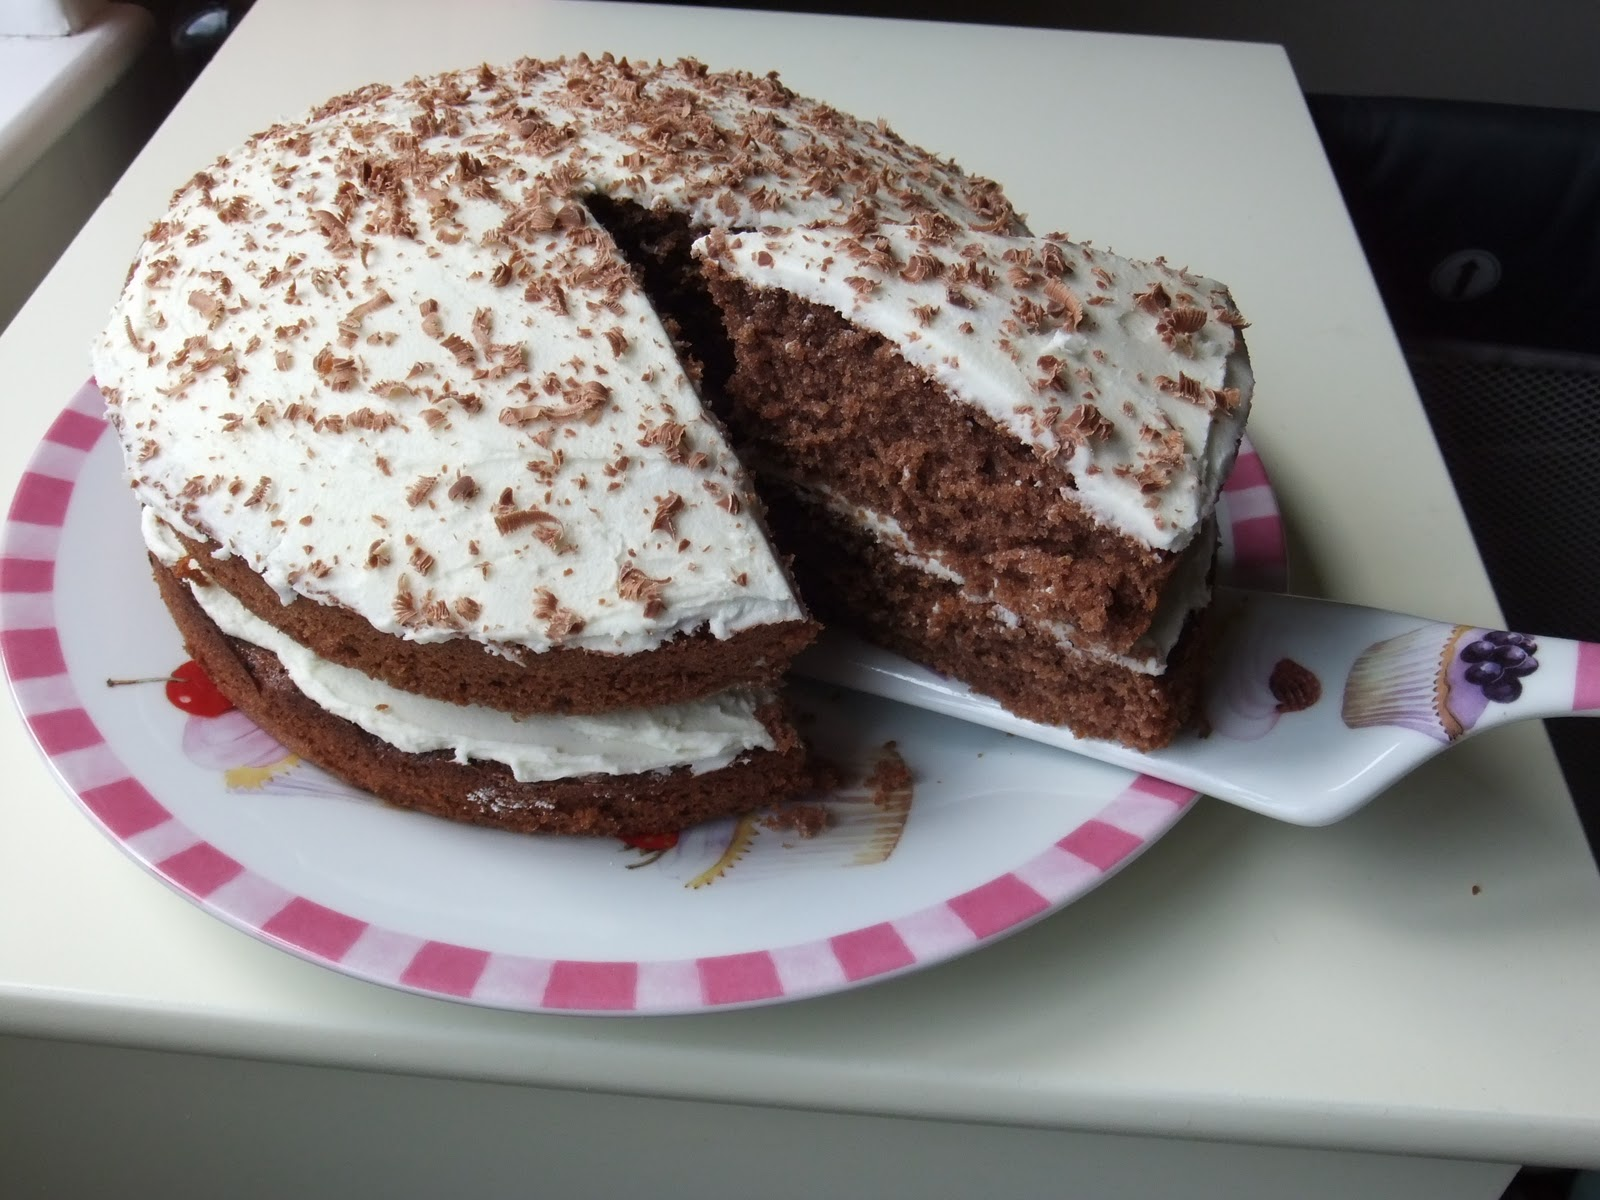 rising to the berry chocolate victoria sandwich